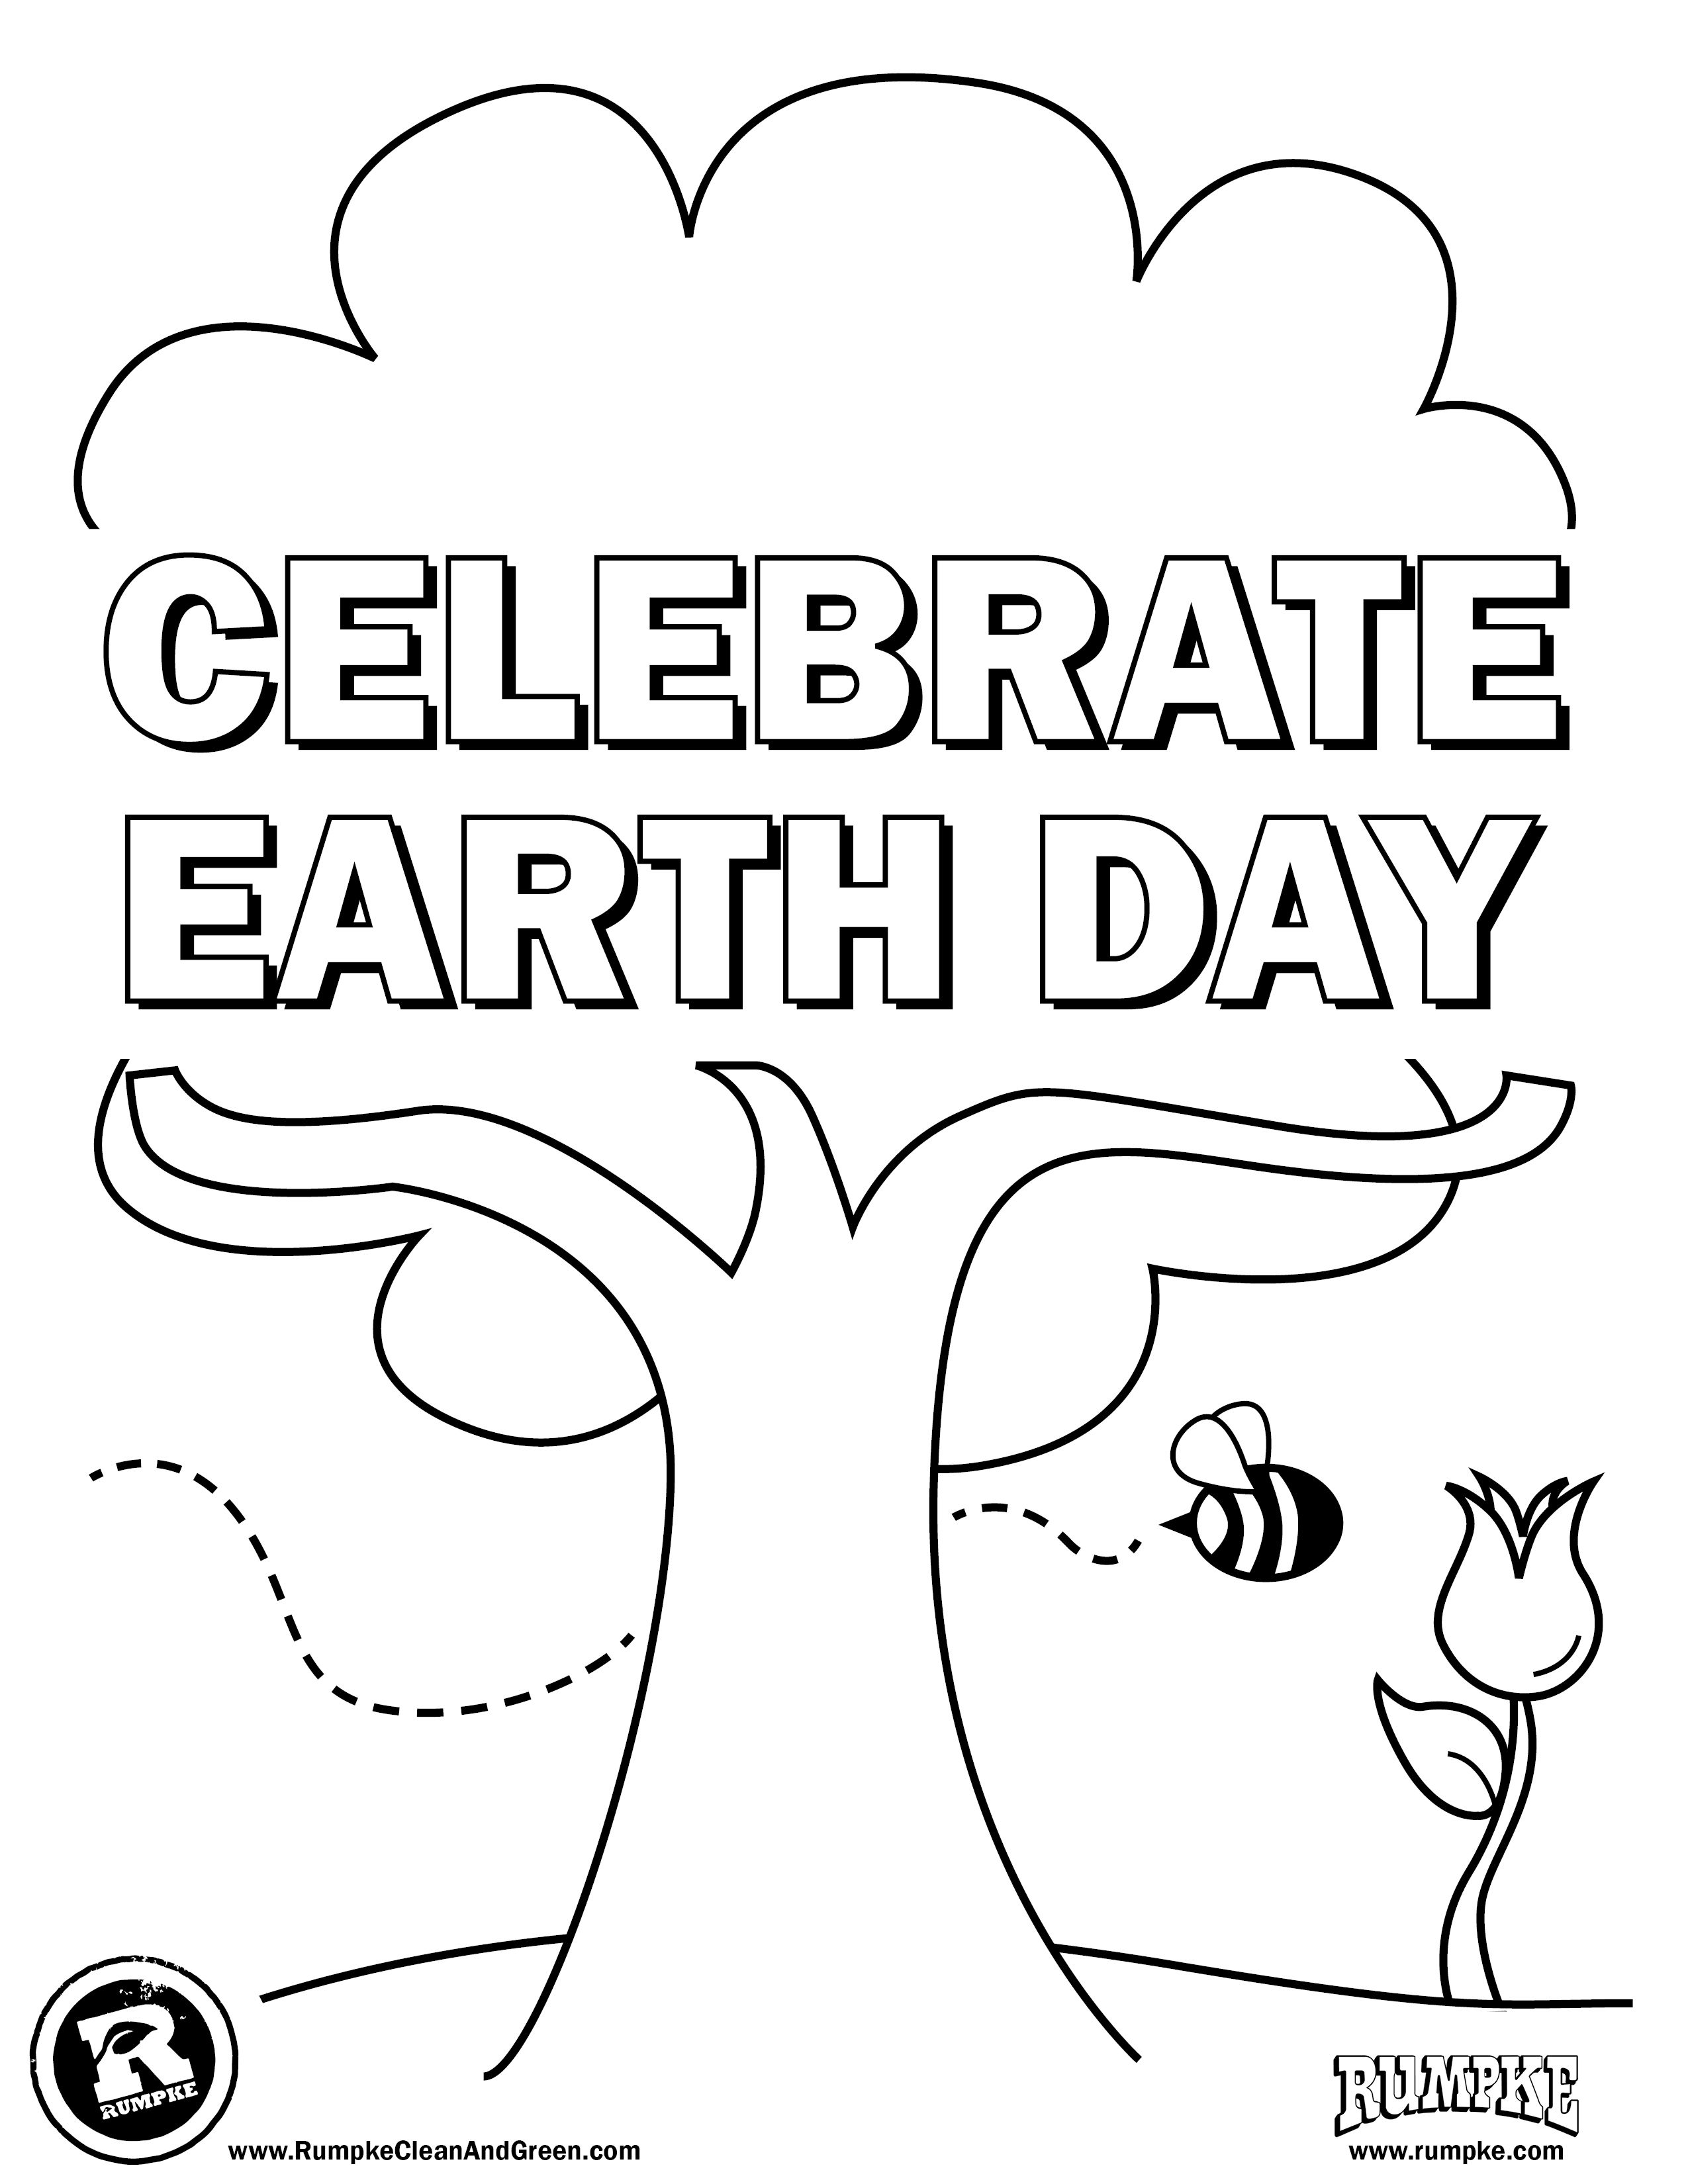 Earth Day Coloring Sheet 2015 Earth Day Coloring Pages